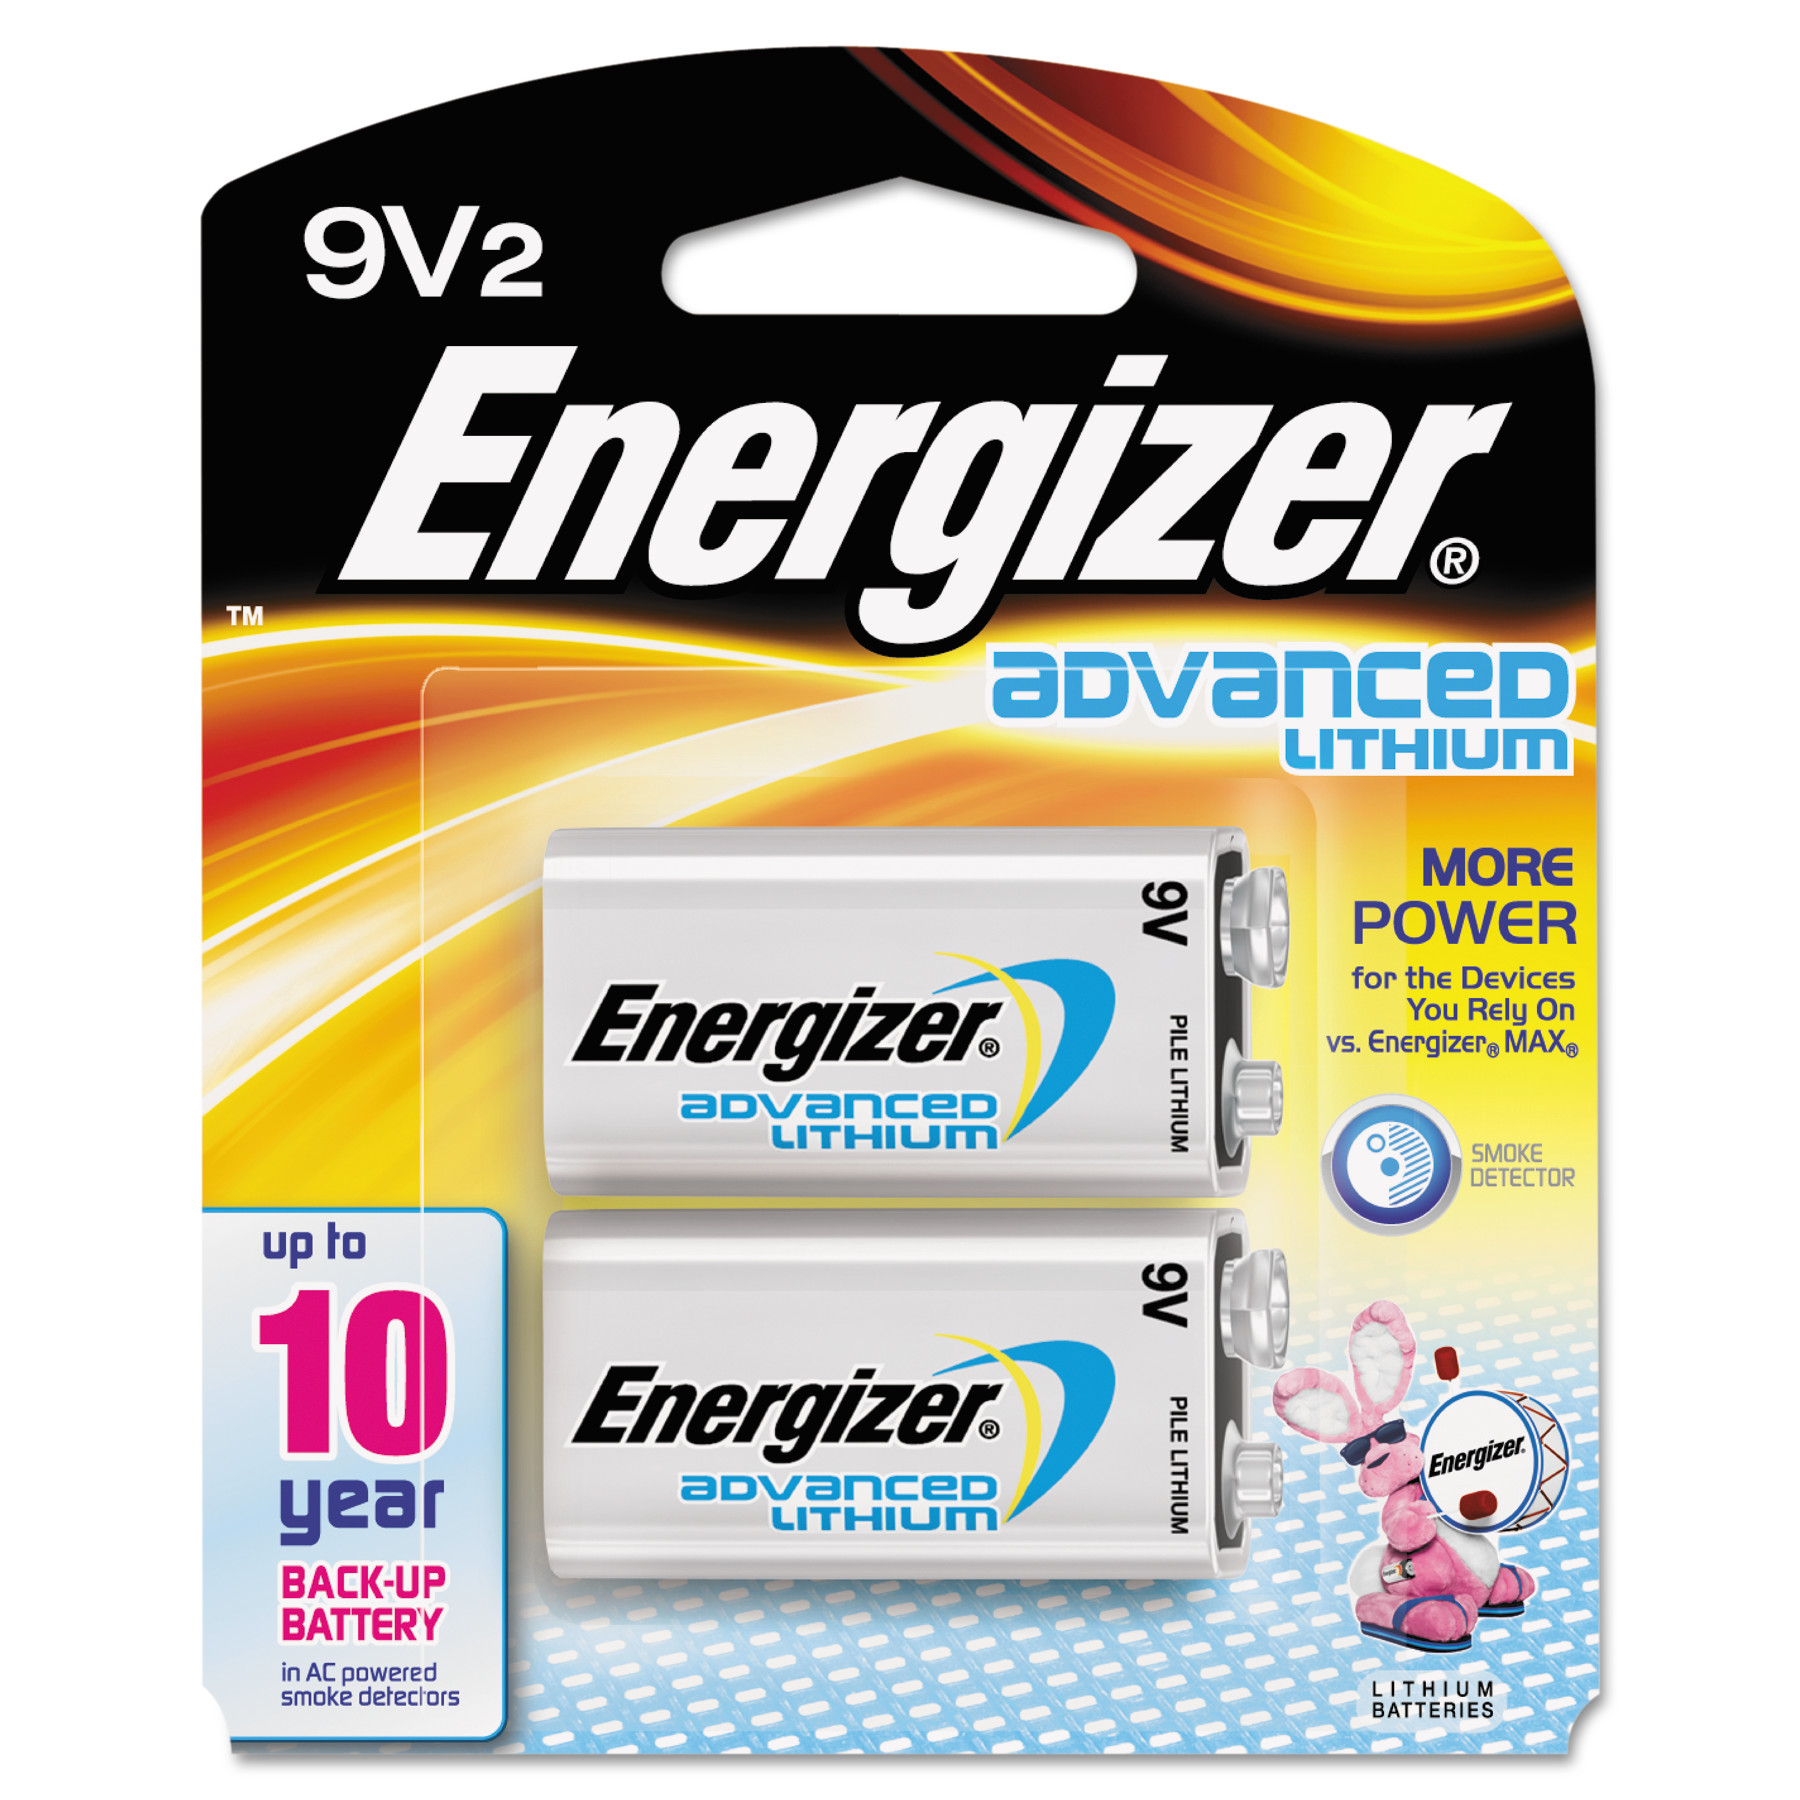 Energizer Advanced Lithium Batteries, 9V, 2/Pack   Walmart.com